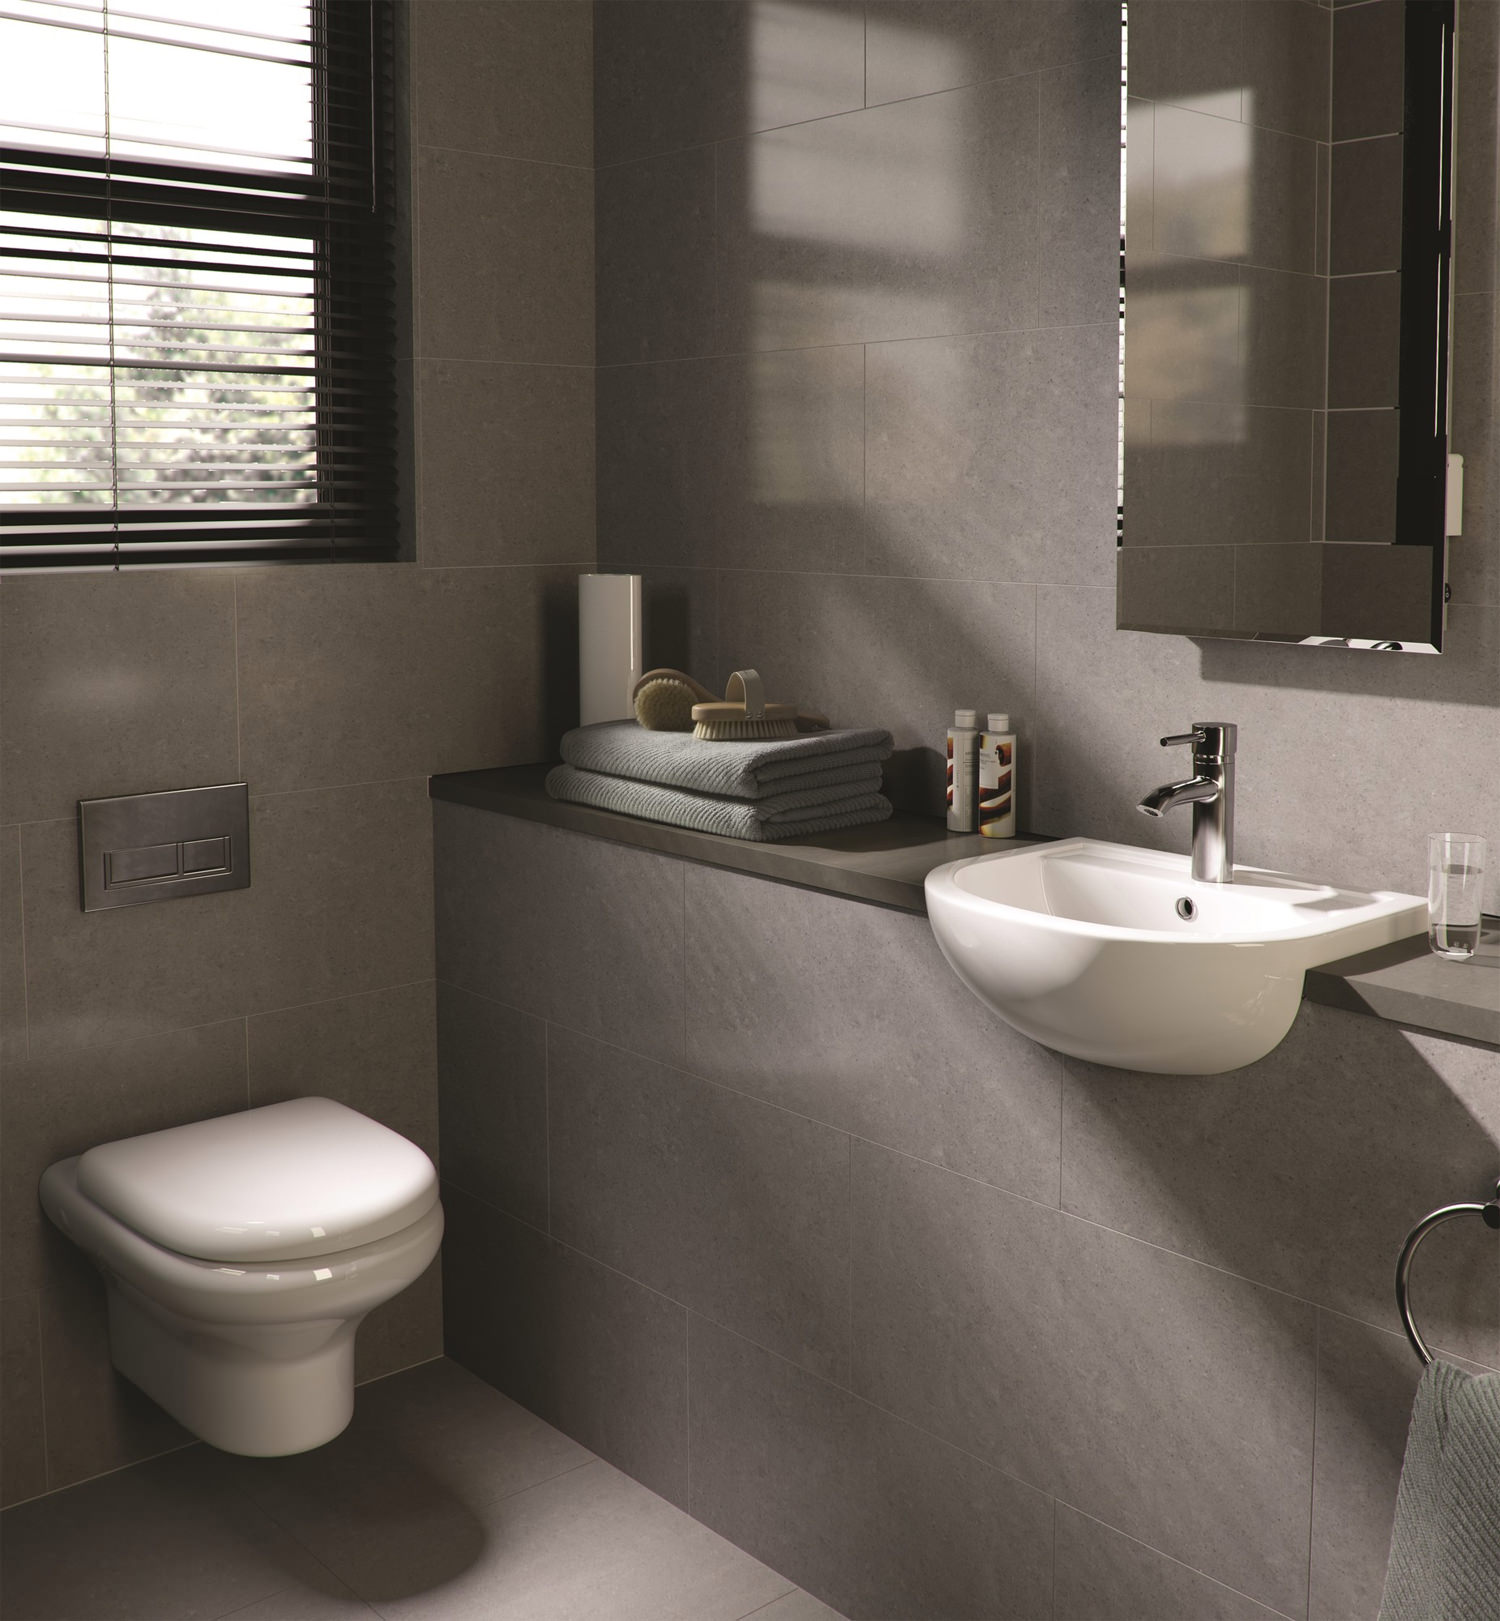 RAK Compact New Wall Hung WC Pan With SoftClose Seat 520mm